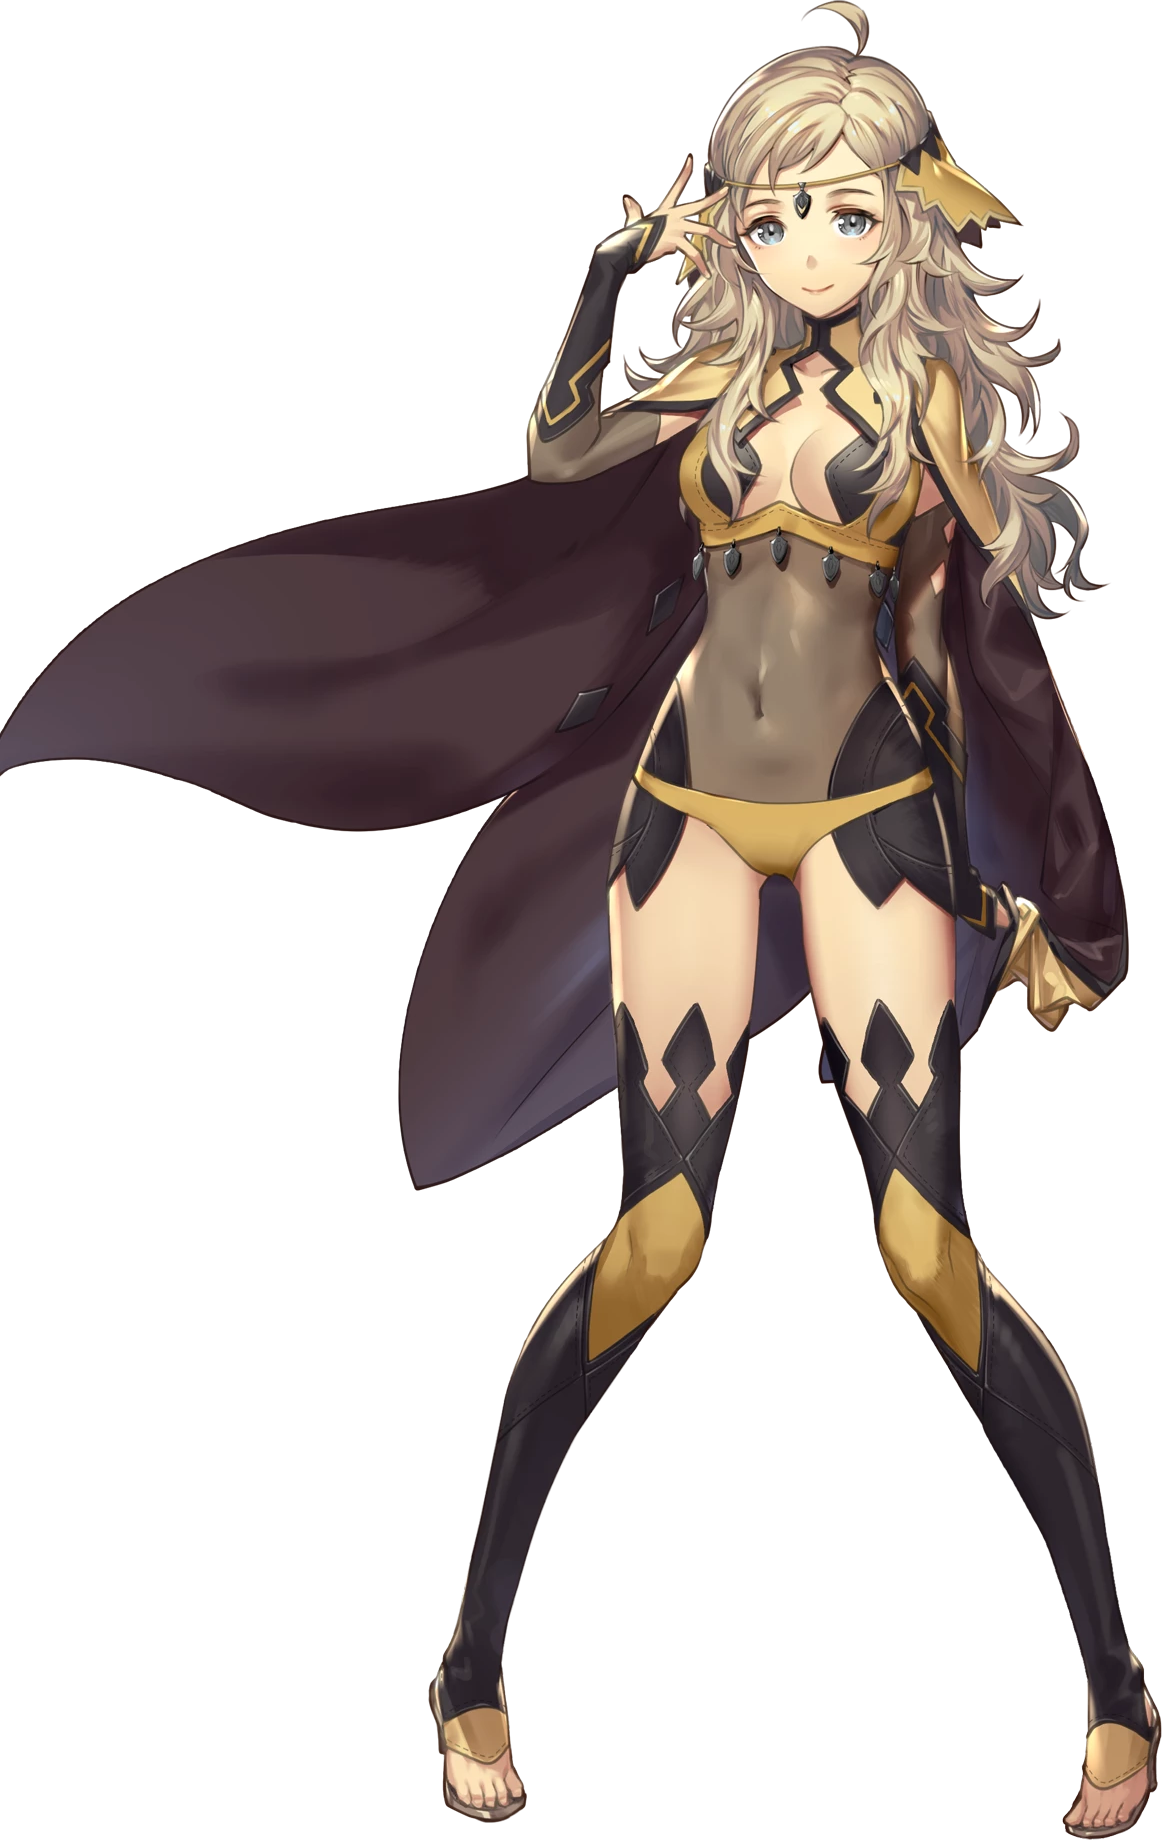 Ophelia as she appears in Fire Emblem Heroes.